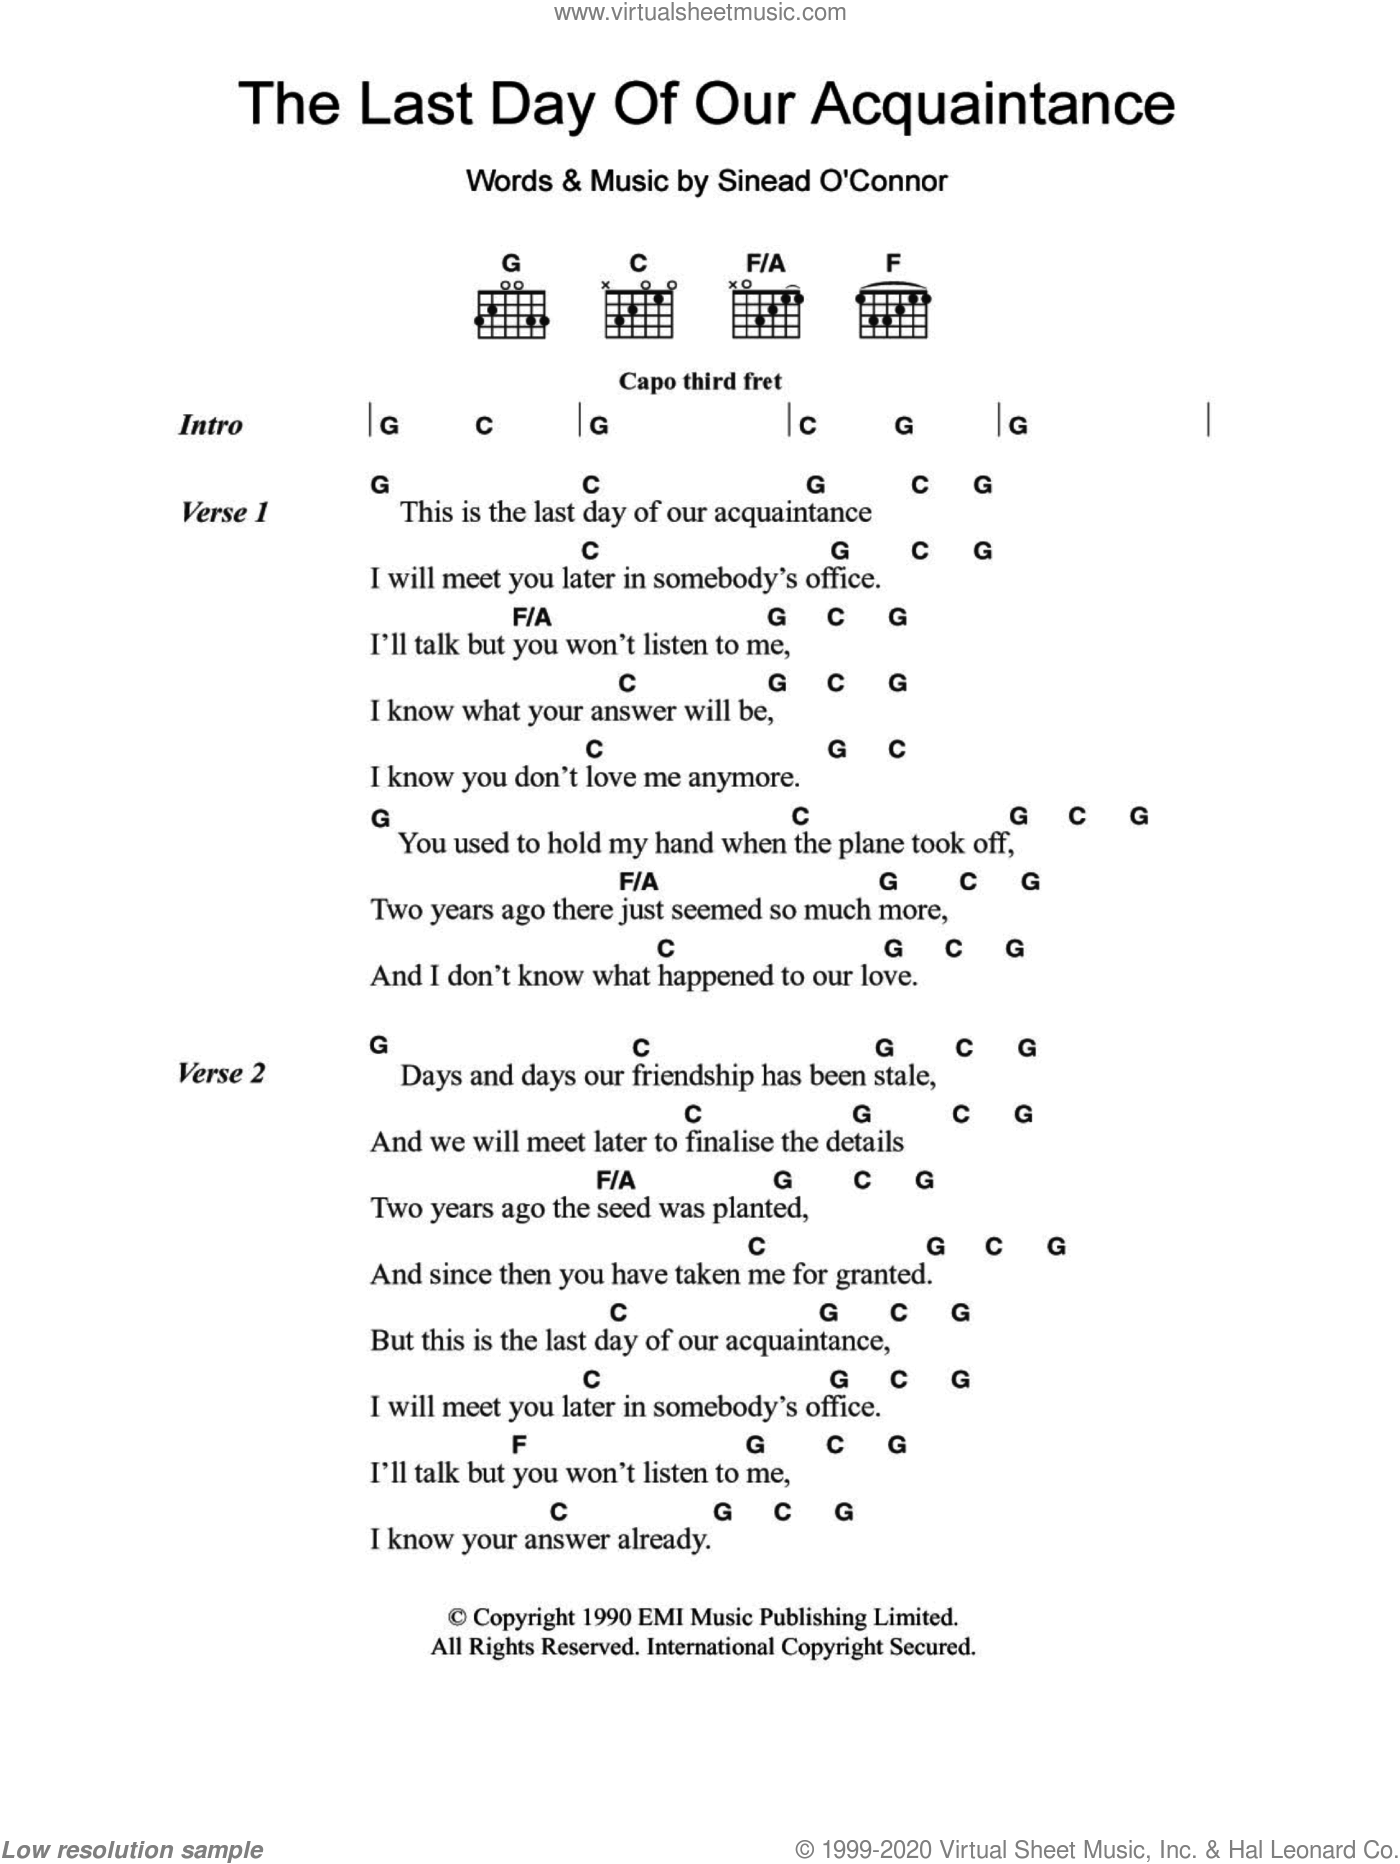 The Last Day Of Our Acquaintance sheet music for guitar (chords) by Sinead O'Connor. Score Image Preview.